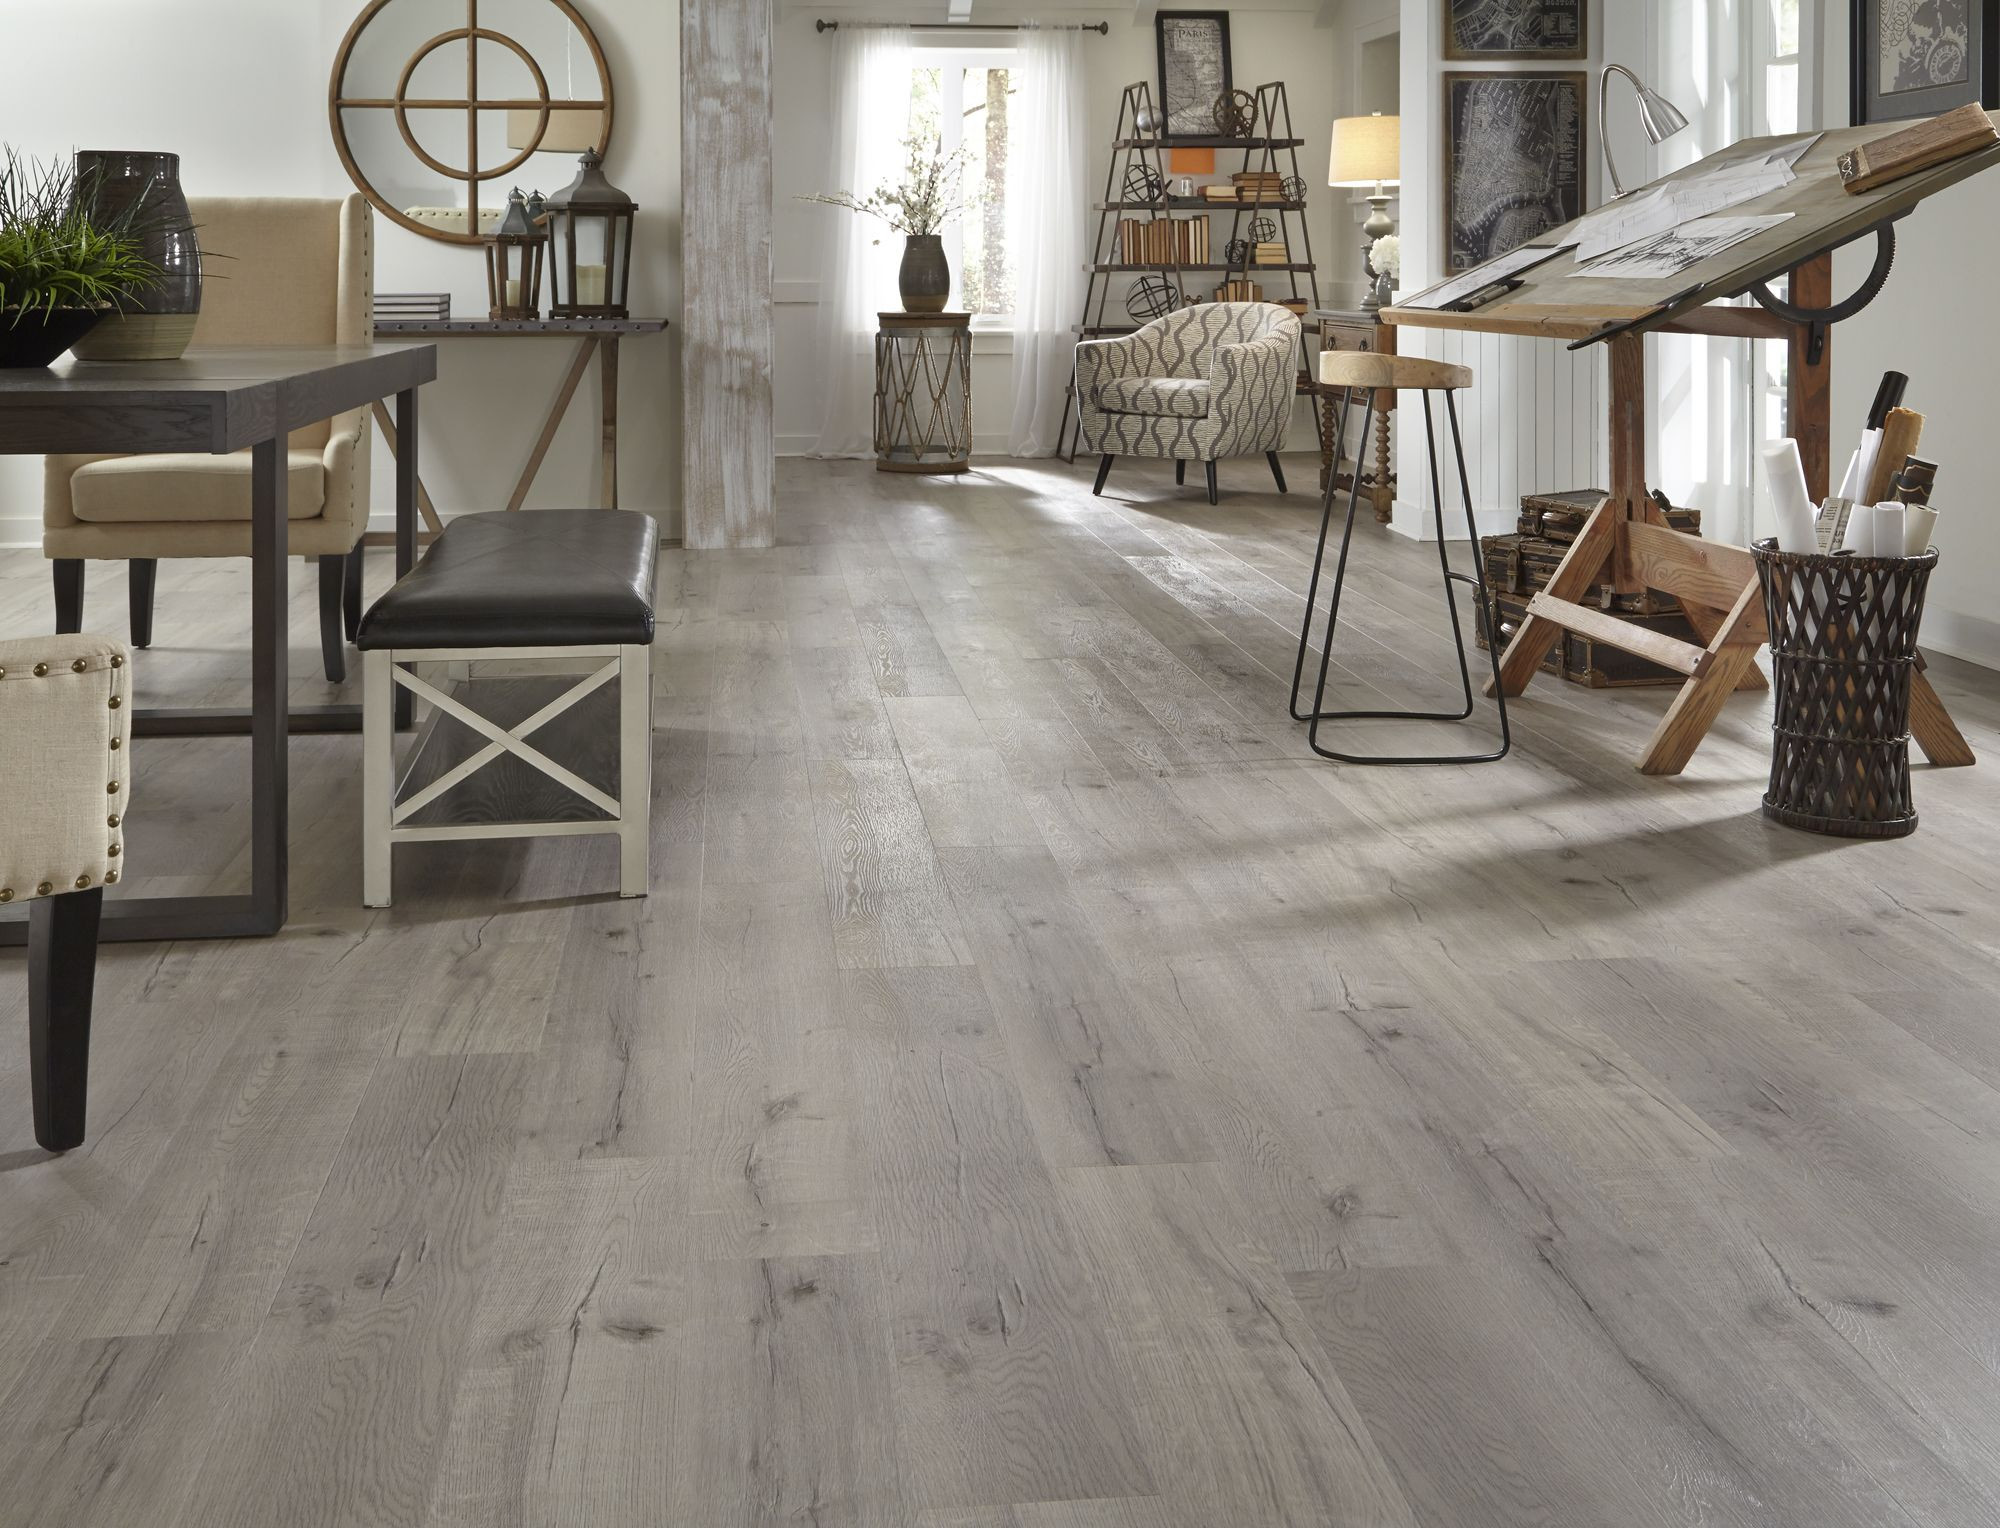 3 4 inch hardwood flooring of this fall flooring season see 100 new flooring styles like driftwood with this fall flooring season see 100 new flooring styles like driftwood hickory evp its part of a new line of waterproof flooring thats ideal for any space